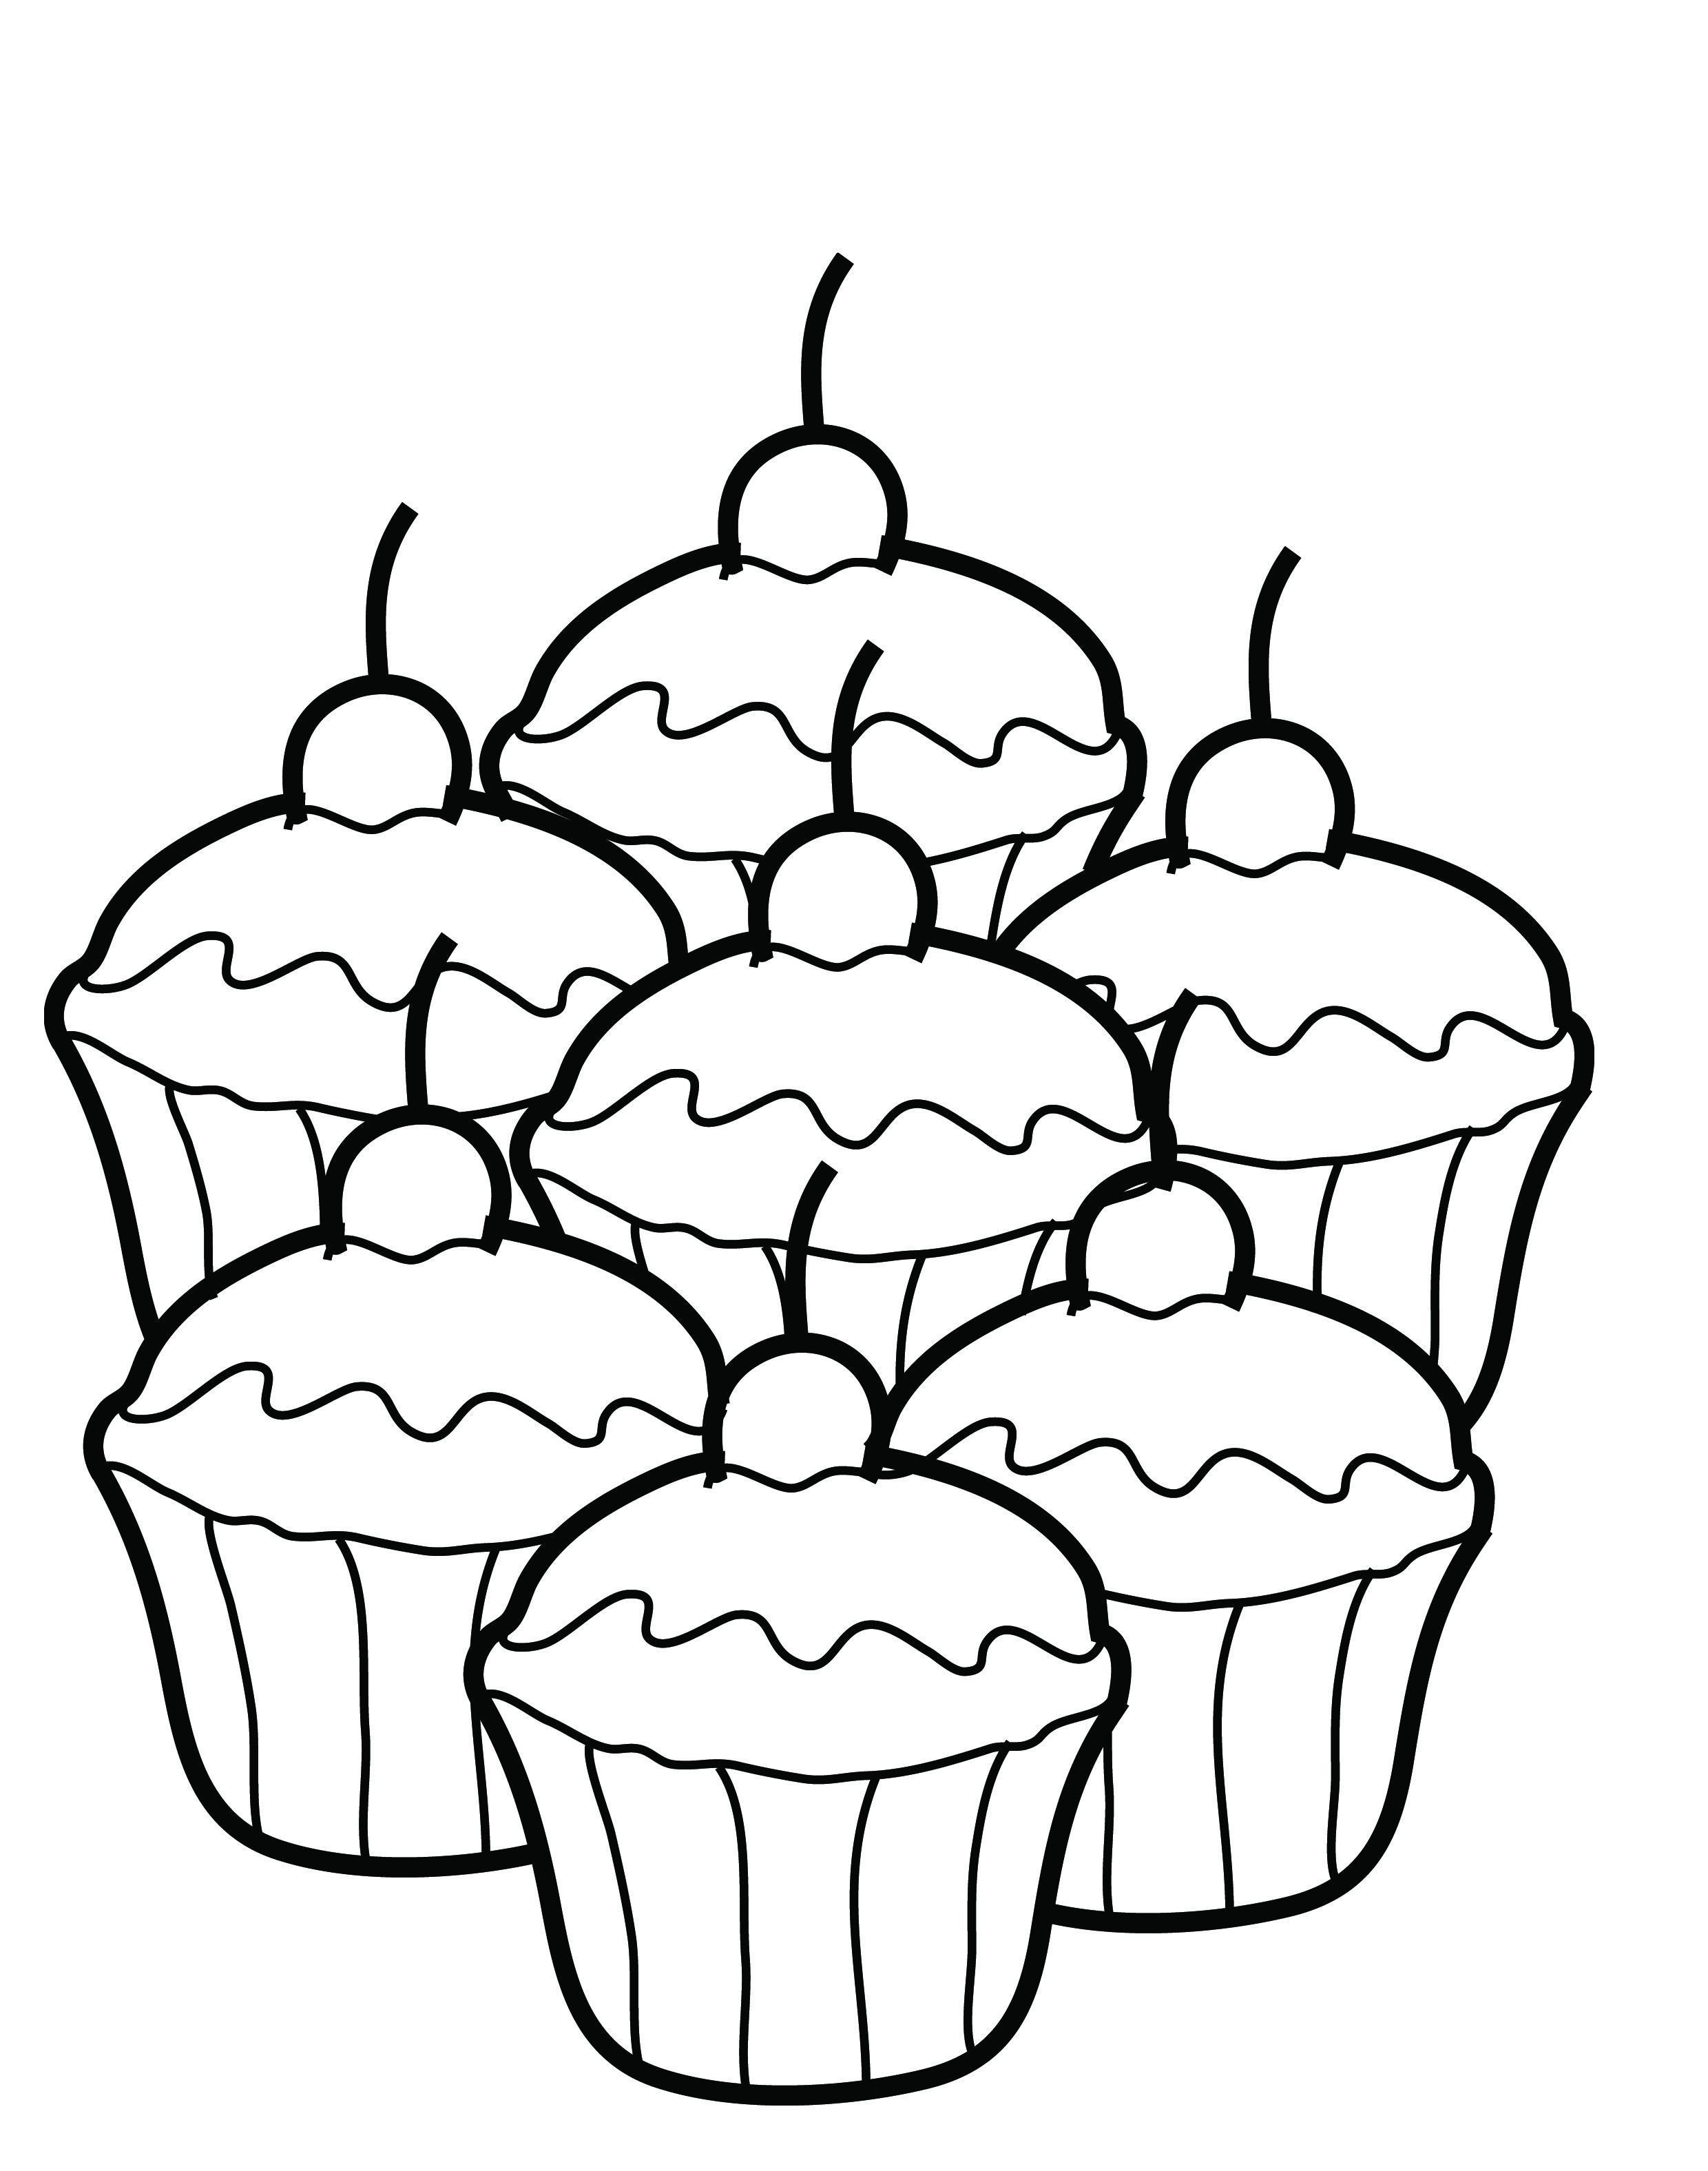 free printable cupcake coloring pages for kids - Printable Sheets For Kids